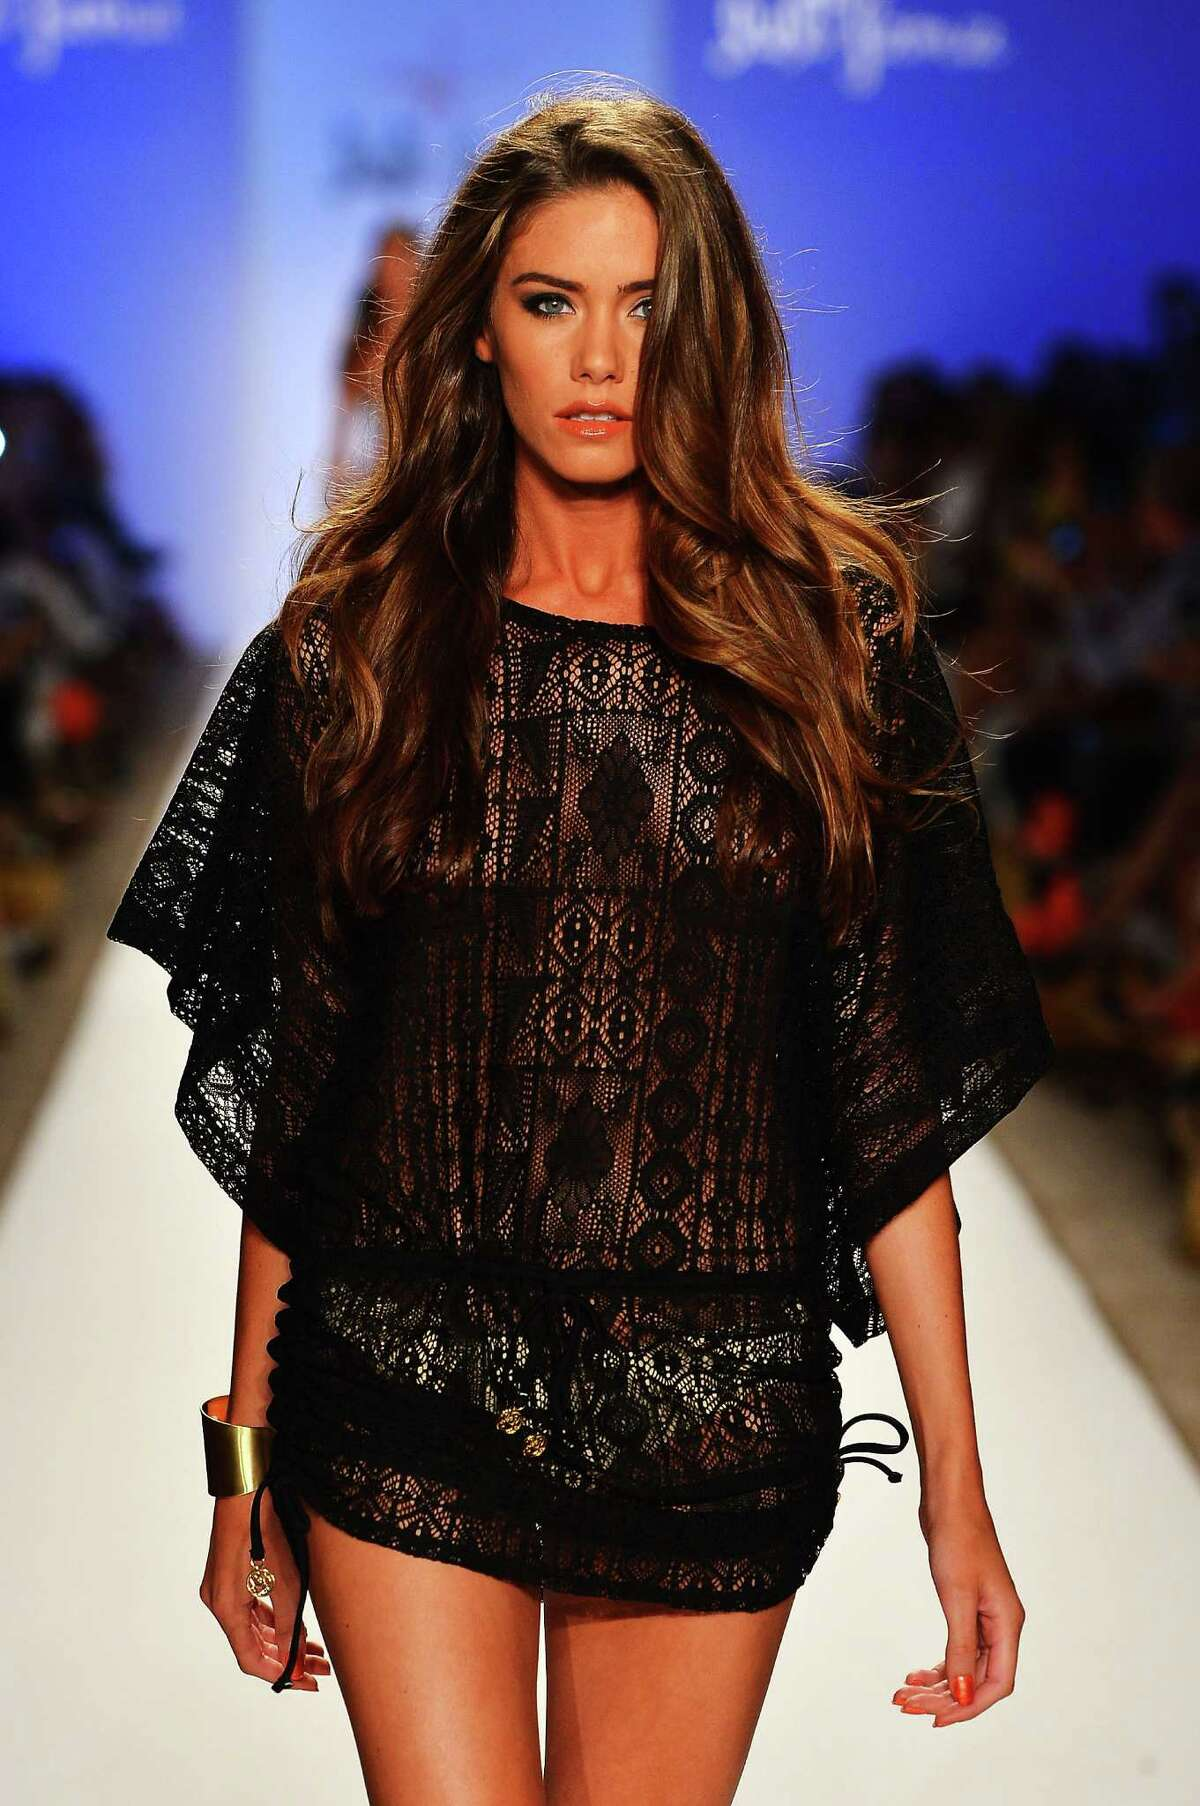 A model walks the runway during the Luli Fama